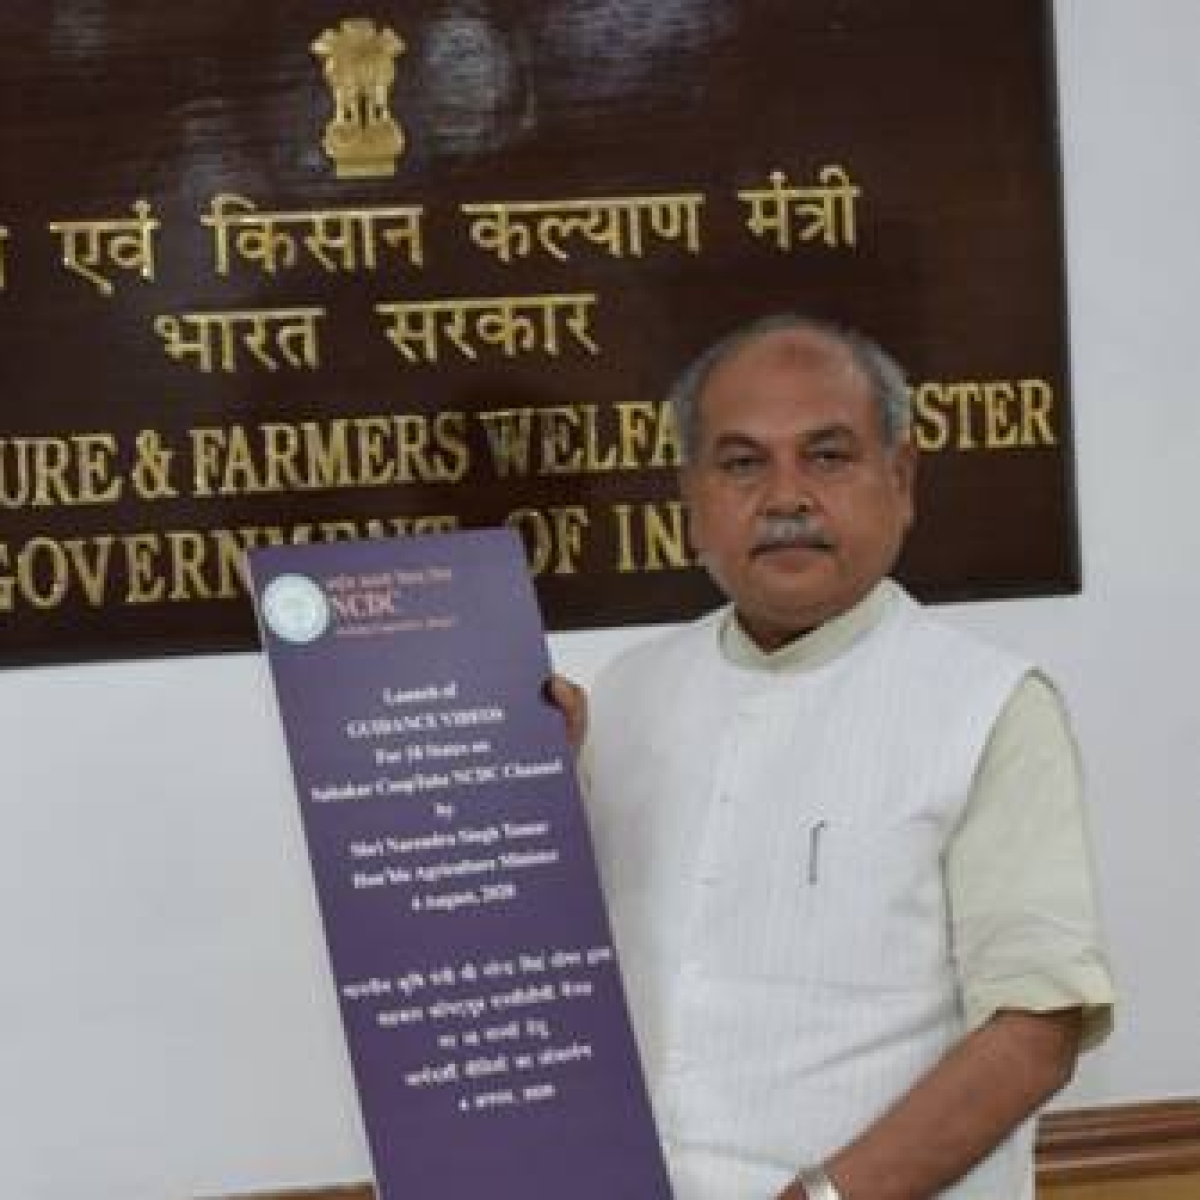 Indore: Farm Acts are 'Sanjeevani' for farmers, says UM Narendra Singh Tomar